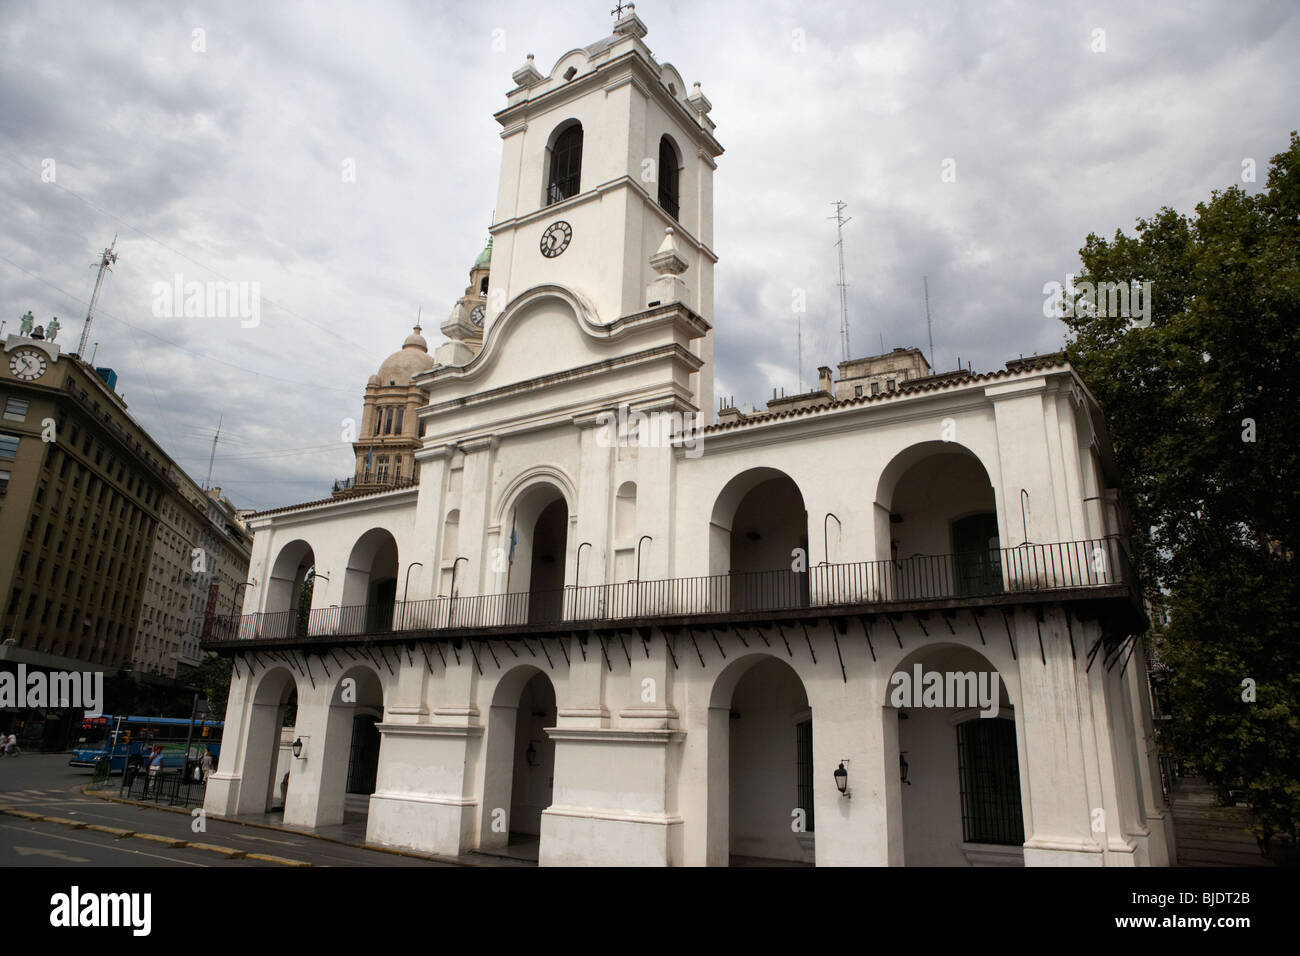 the cabildo town council building used as a museum in capital federal buenos aires republic of argentina south america - Stock Image